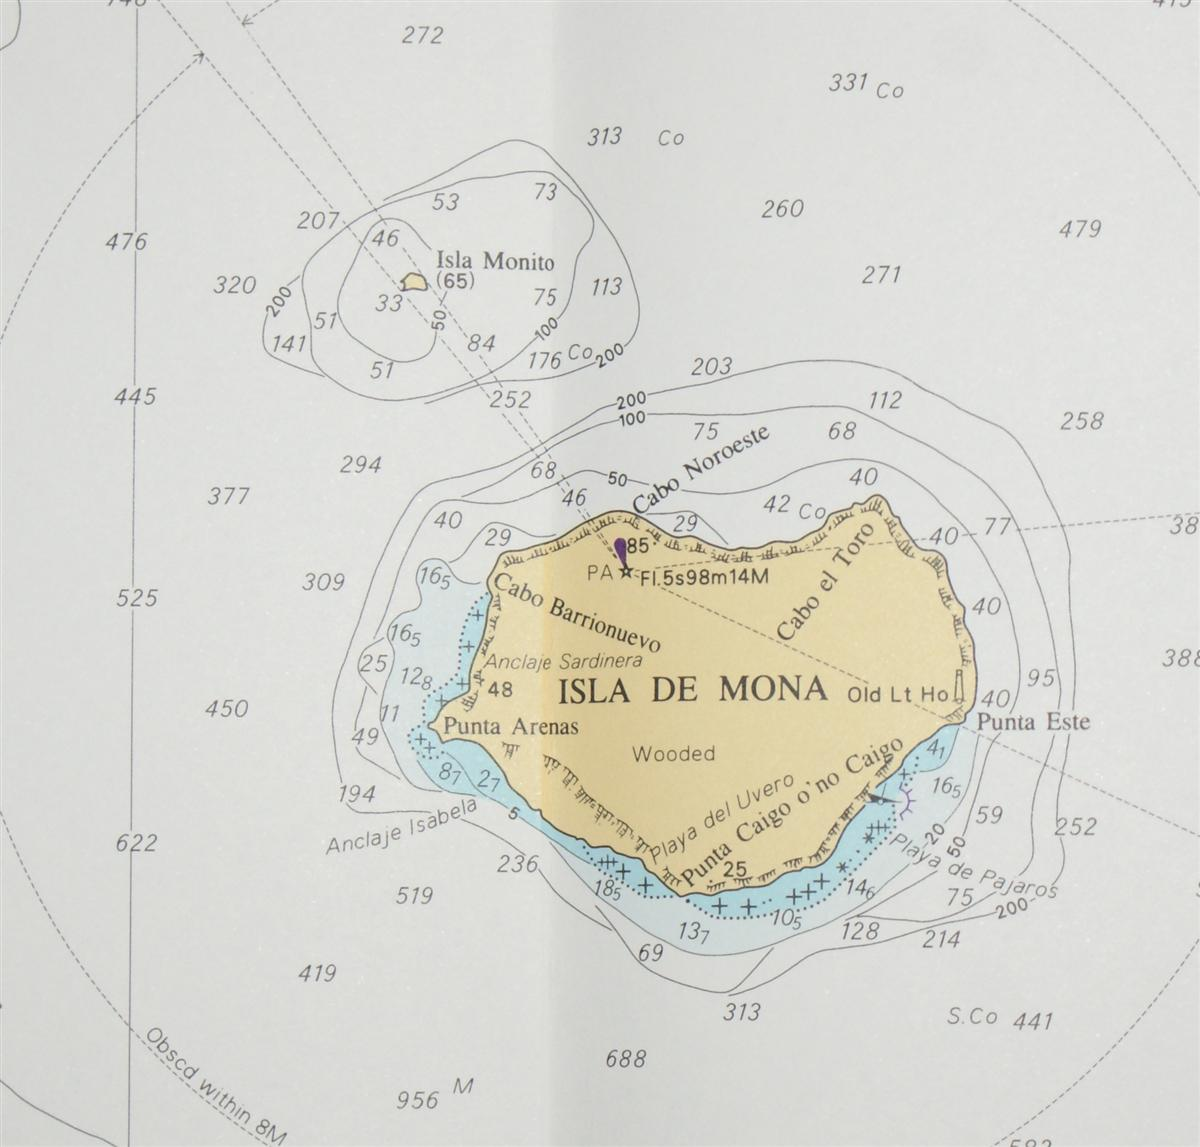 Image for Nautical Chart No. 472 West Indies - Dominican Republic and Puerto Rico, Mona Passage and Isla de Mona